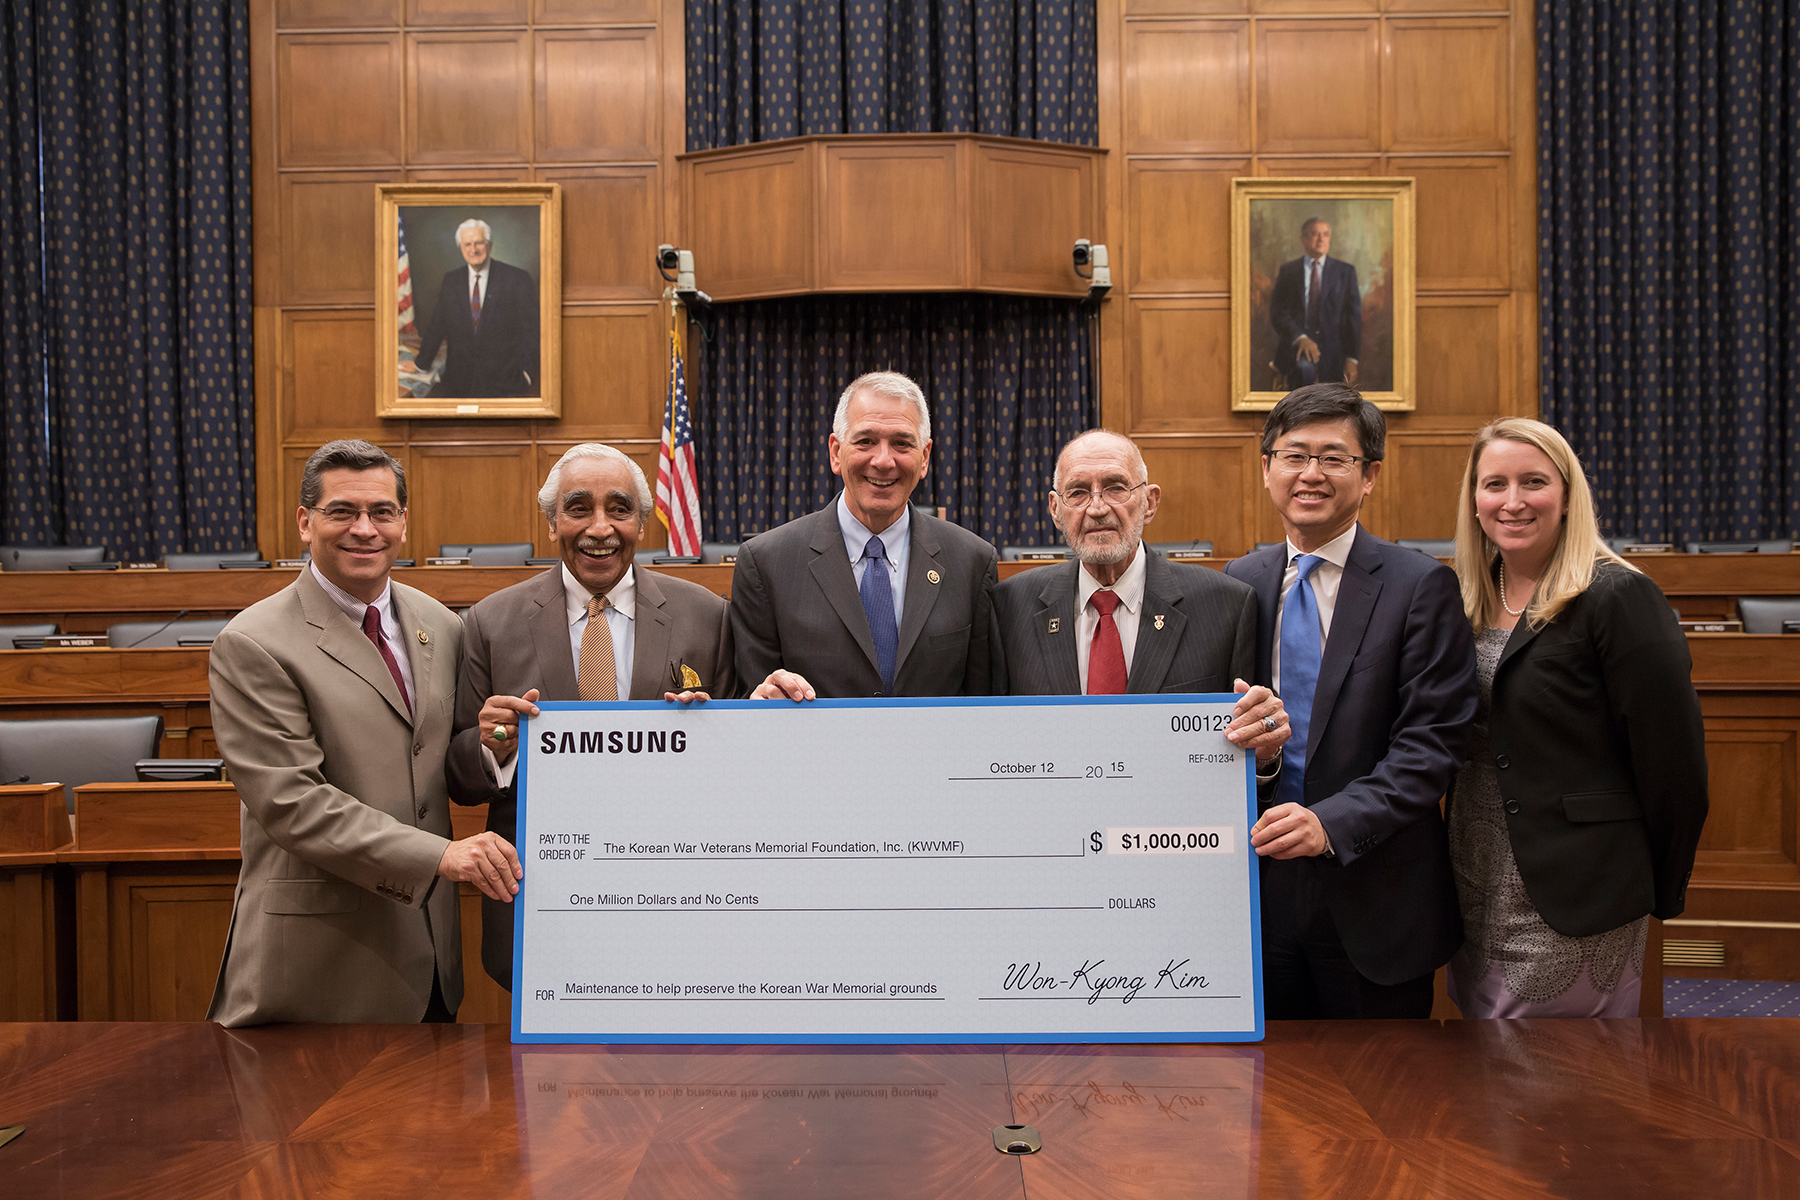 'Korean War Veterans Memorial Foundation's Memorial Fund' Has Received Donation From Samsung Electronics For Its Maintenance